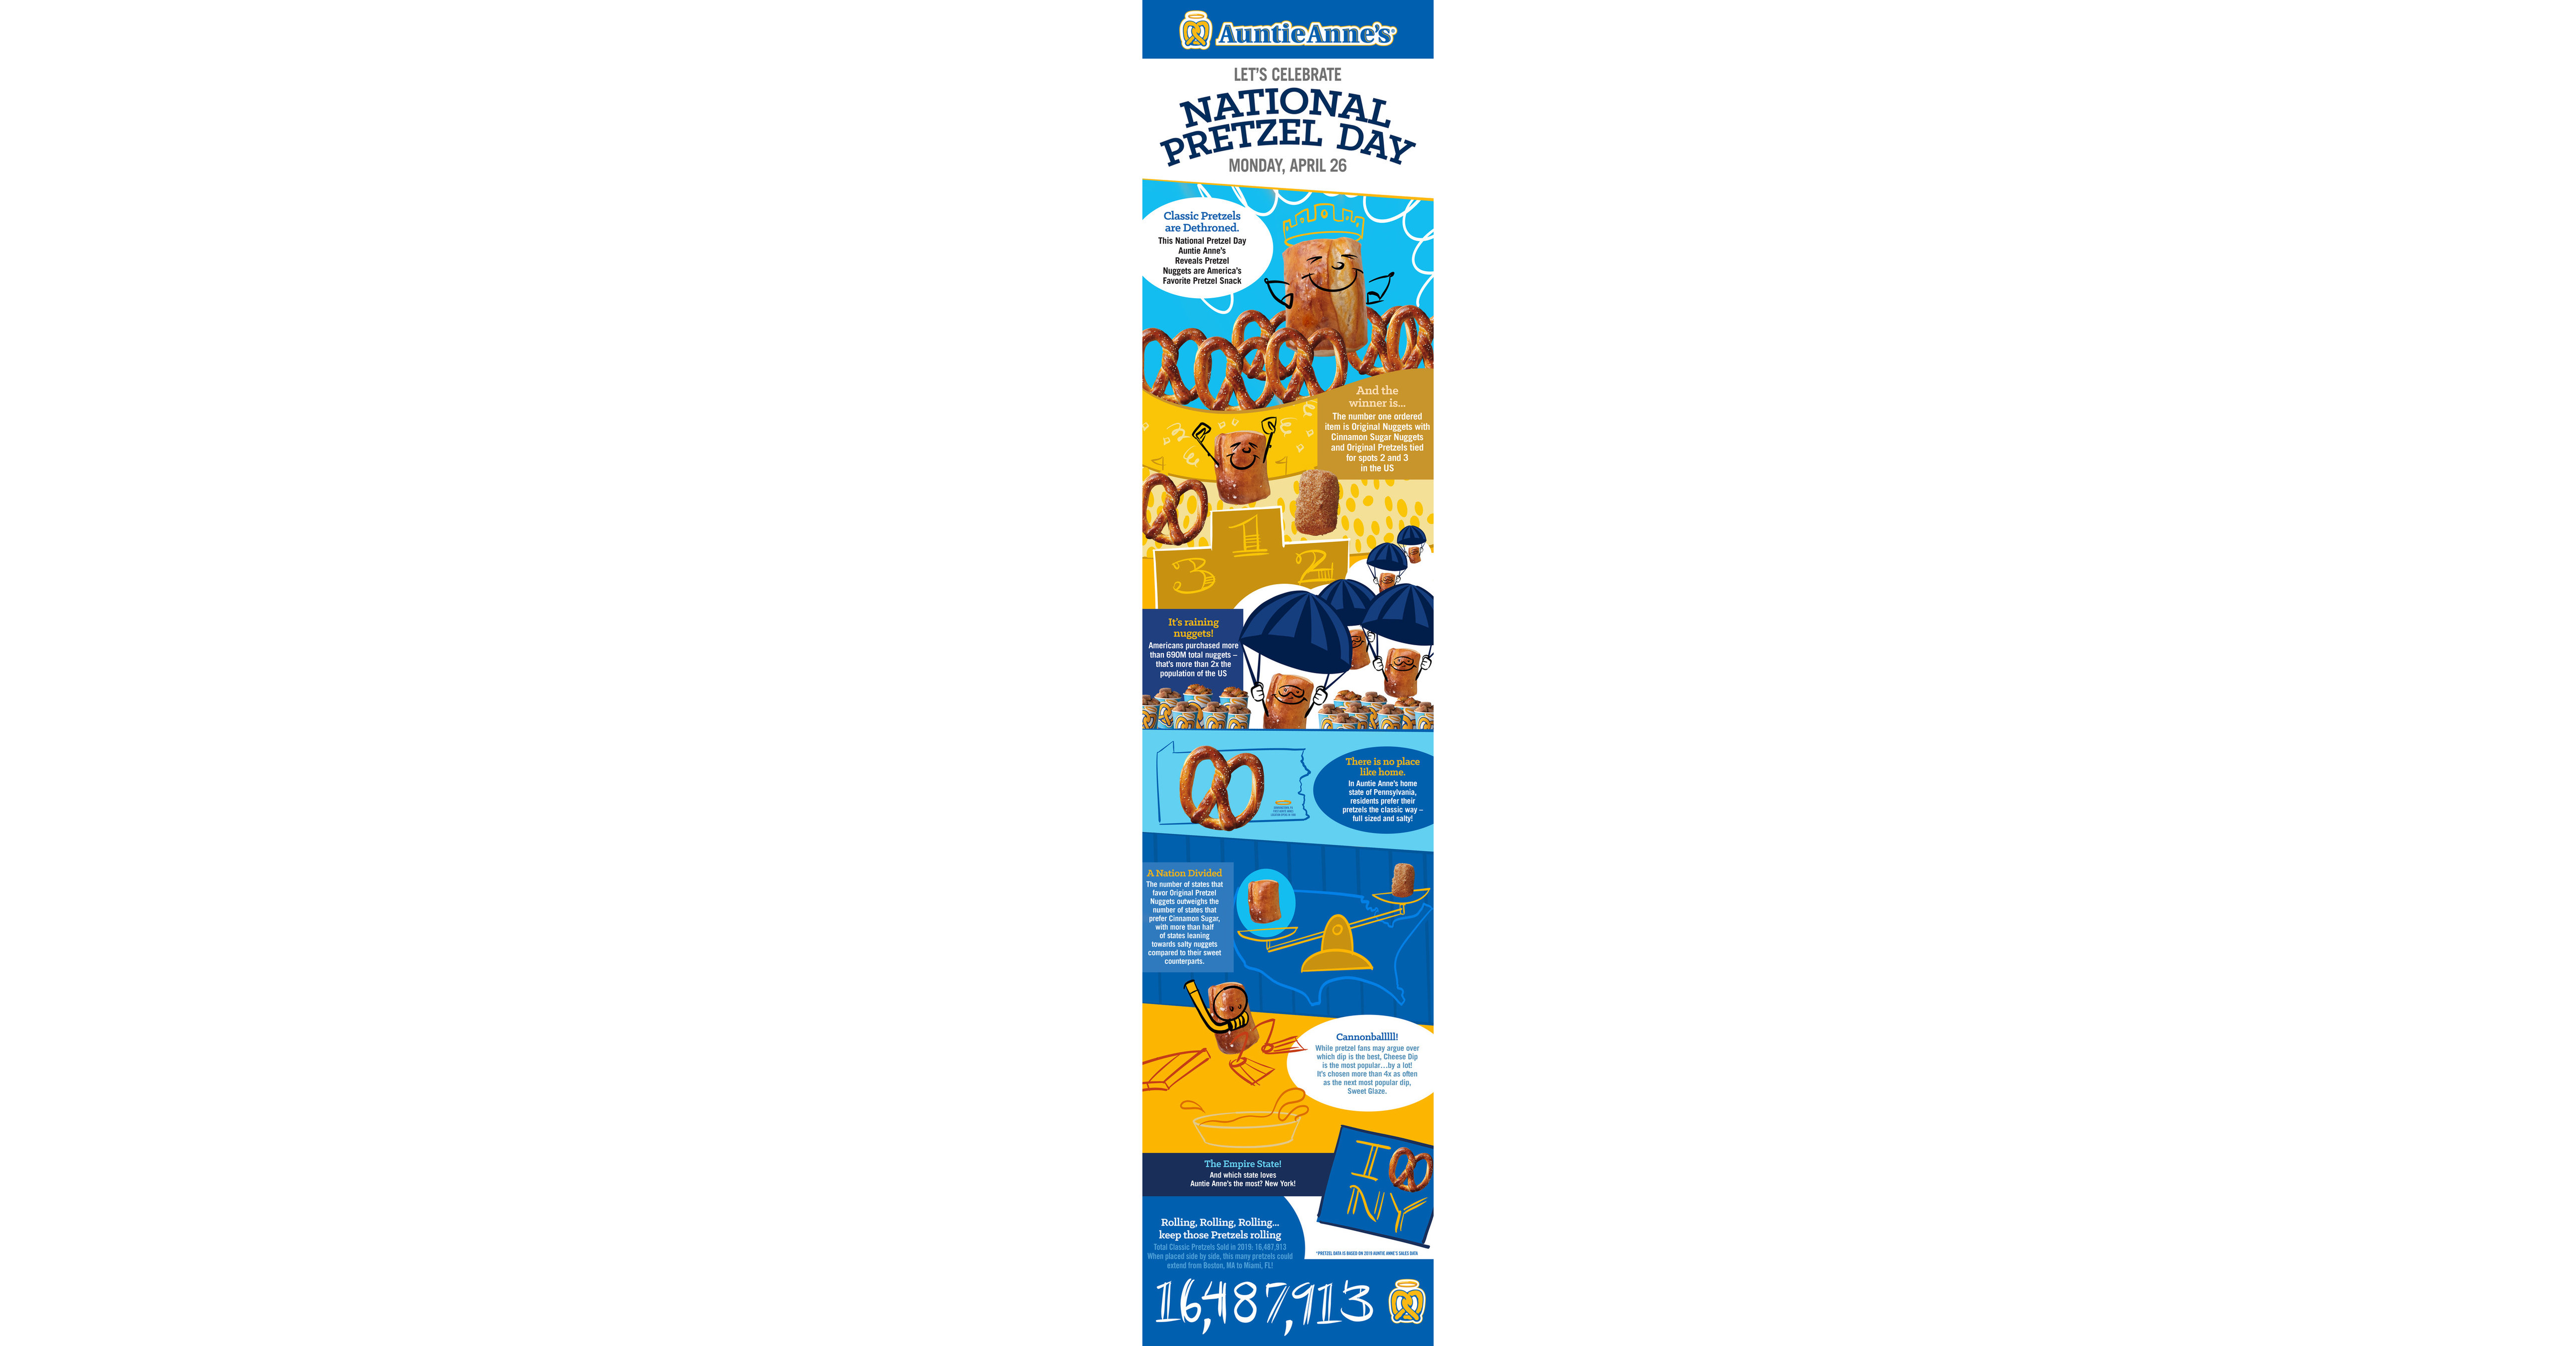 Auntie Anne's Celebrates National Pretzel Day with Free Pretzels, Fun Pretzel Facts, and a Week Filled with Delicious Deals and Prizes